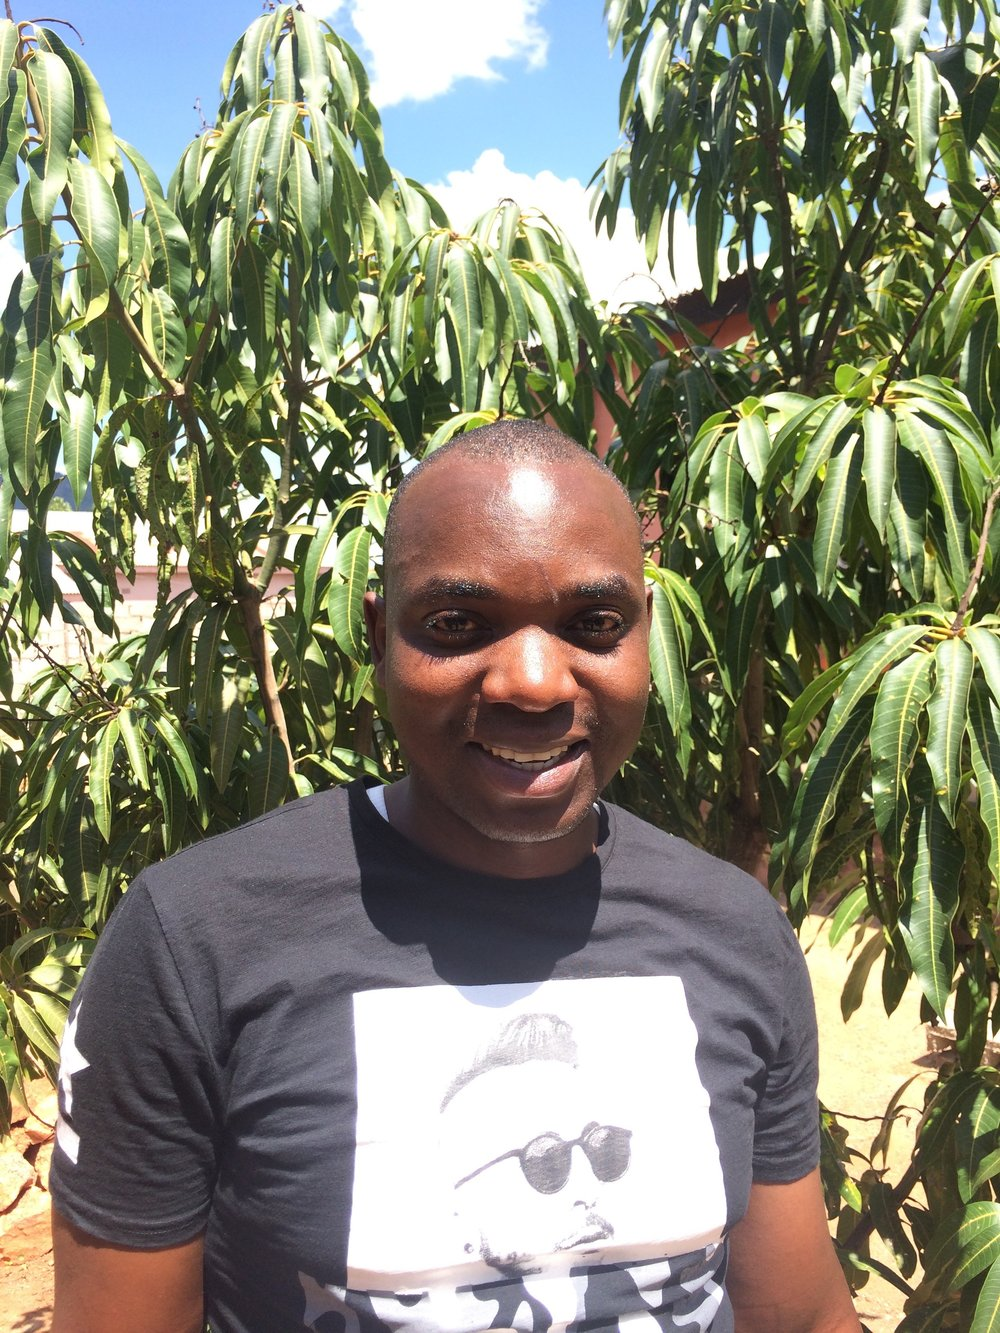 Richard Phiri, Head of Operations Sinda & Petauke   Richard Phiri is a graduate from the University of Zambia and holds a BA in Development Studies. Before joining Impact Network he worked at Katete Civic Centre and Katete Riverside Secondary School. He joined Impact Network in 2017 as the Operations Manager for Sinda and was promoted to Head of Operations for Sinda and Petauke in 2018.